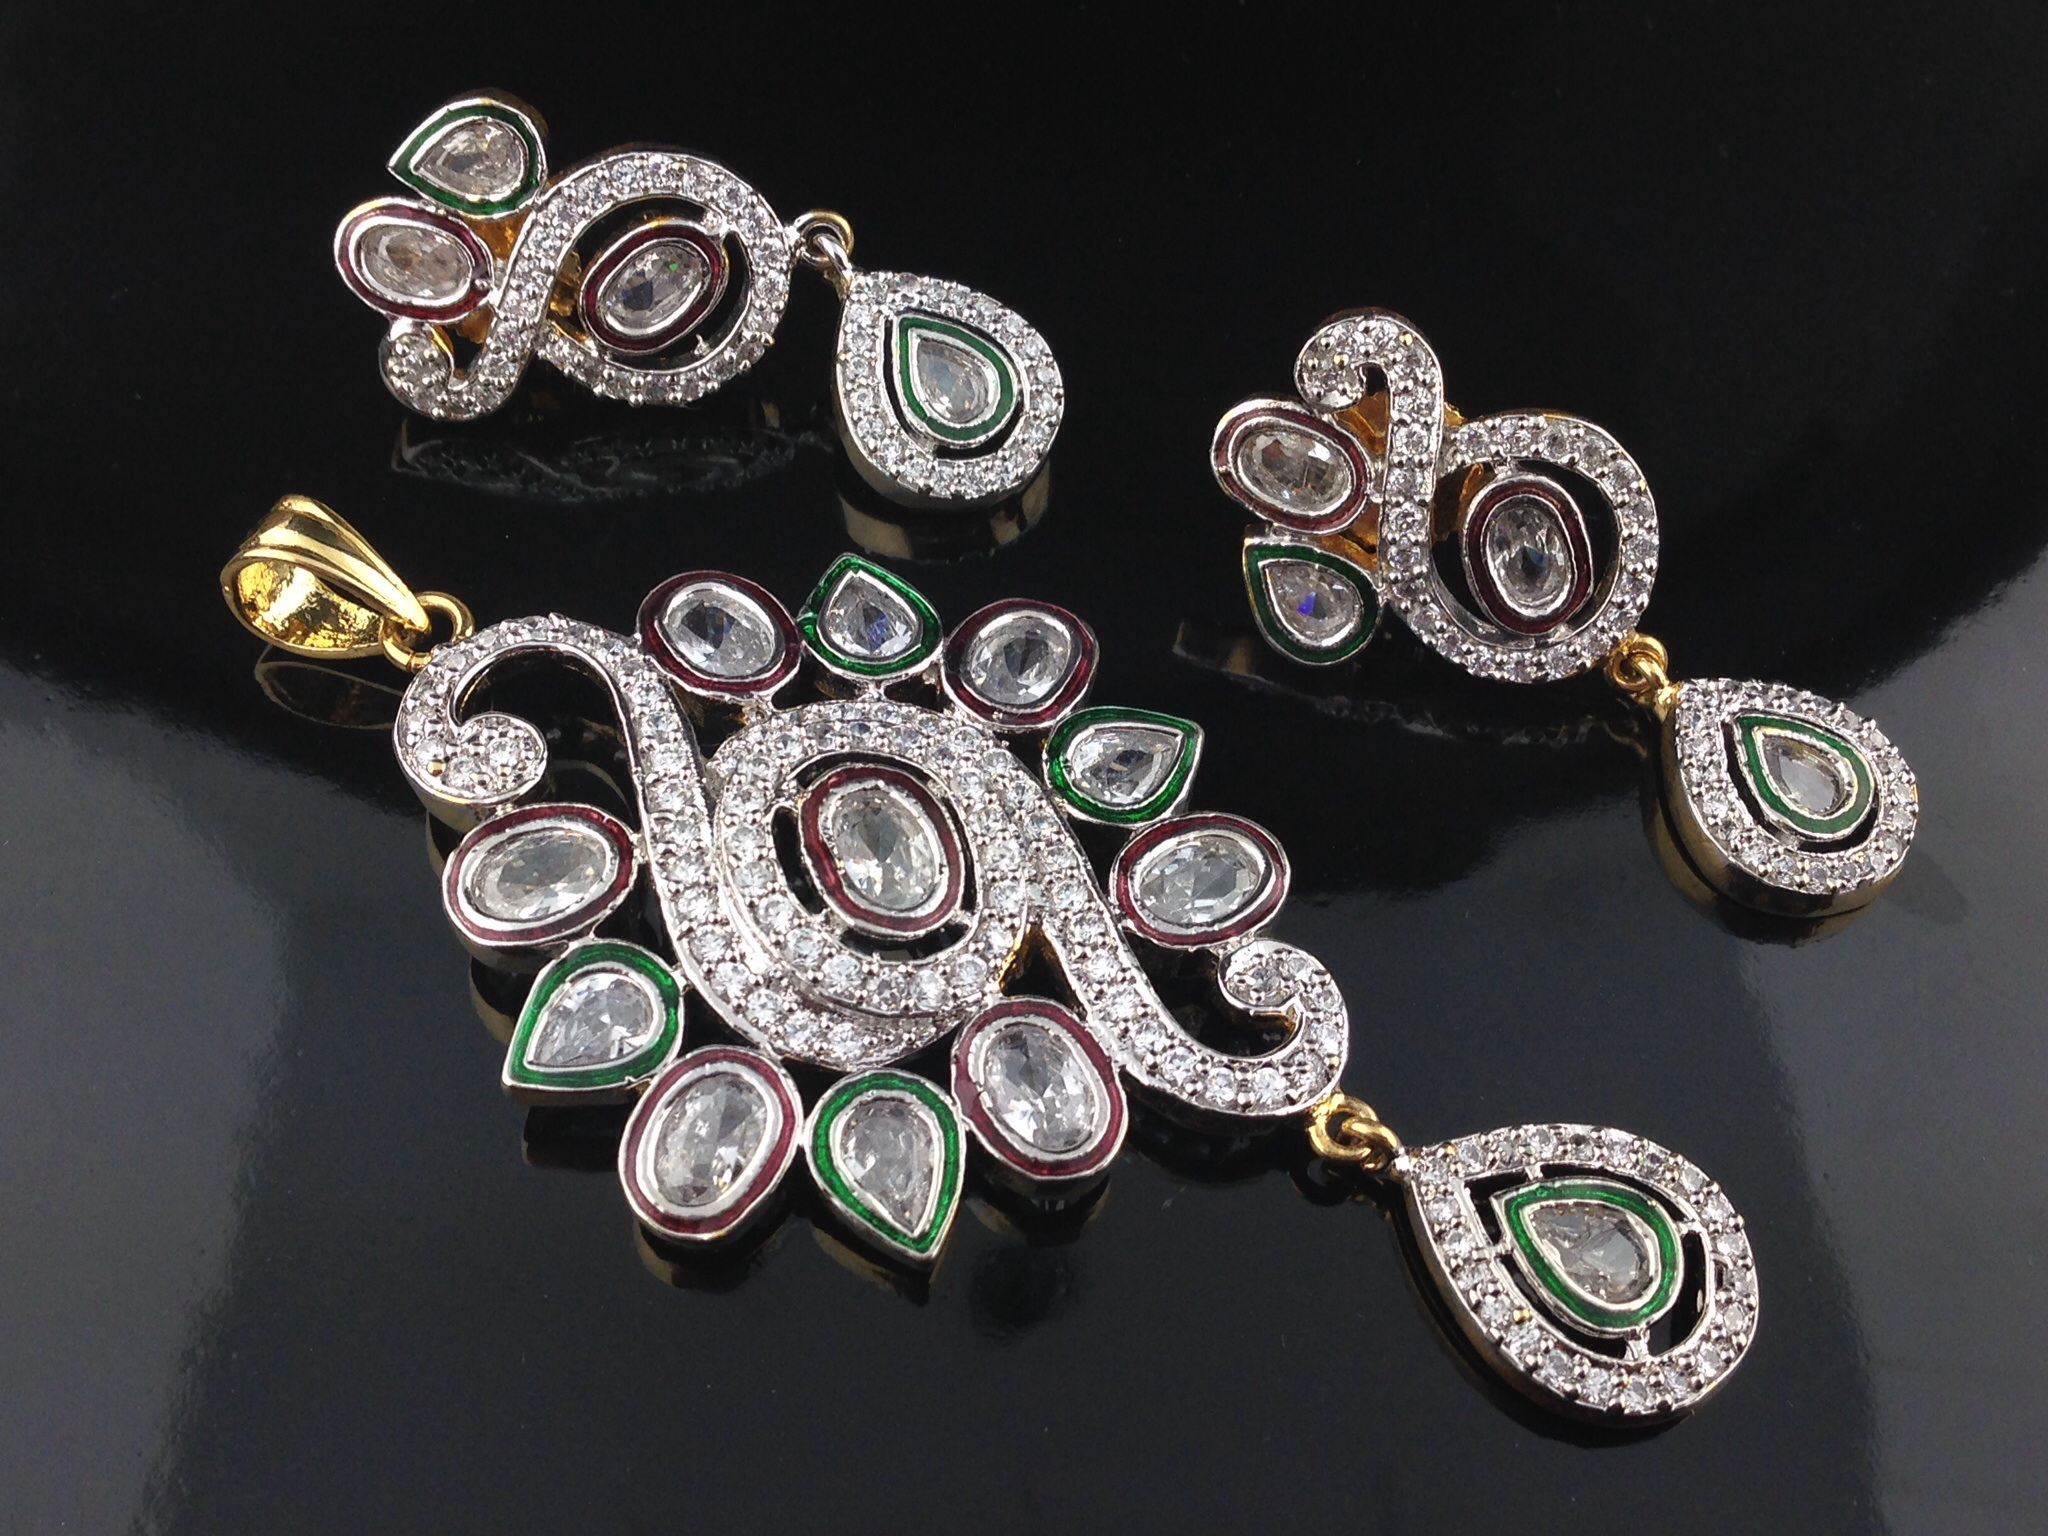 online in indian with islamic jewelry atlanta set gold diamond kundan and p bridal american rubies stunning